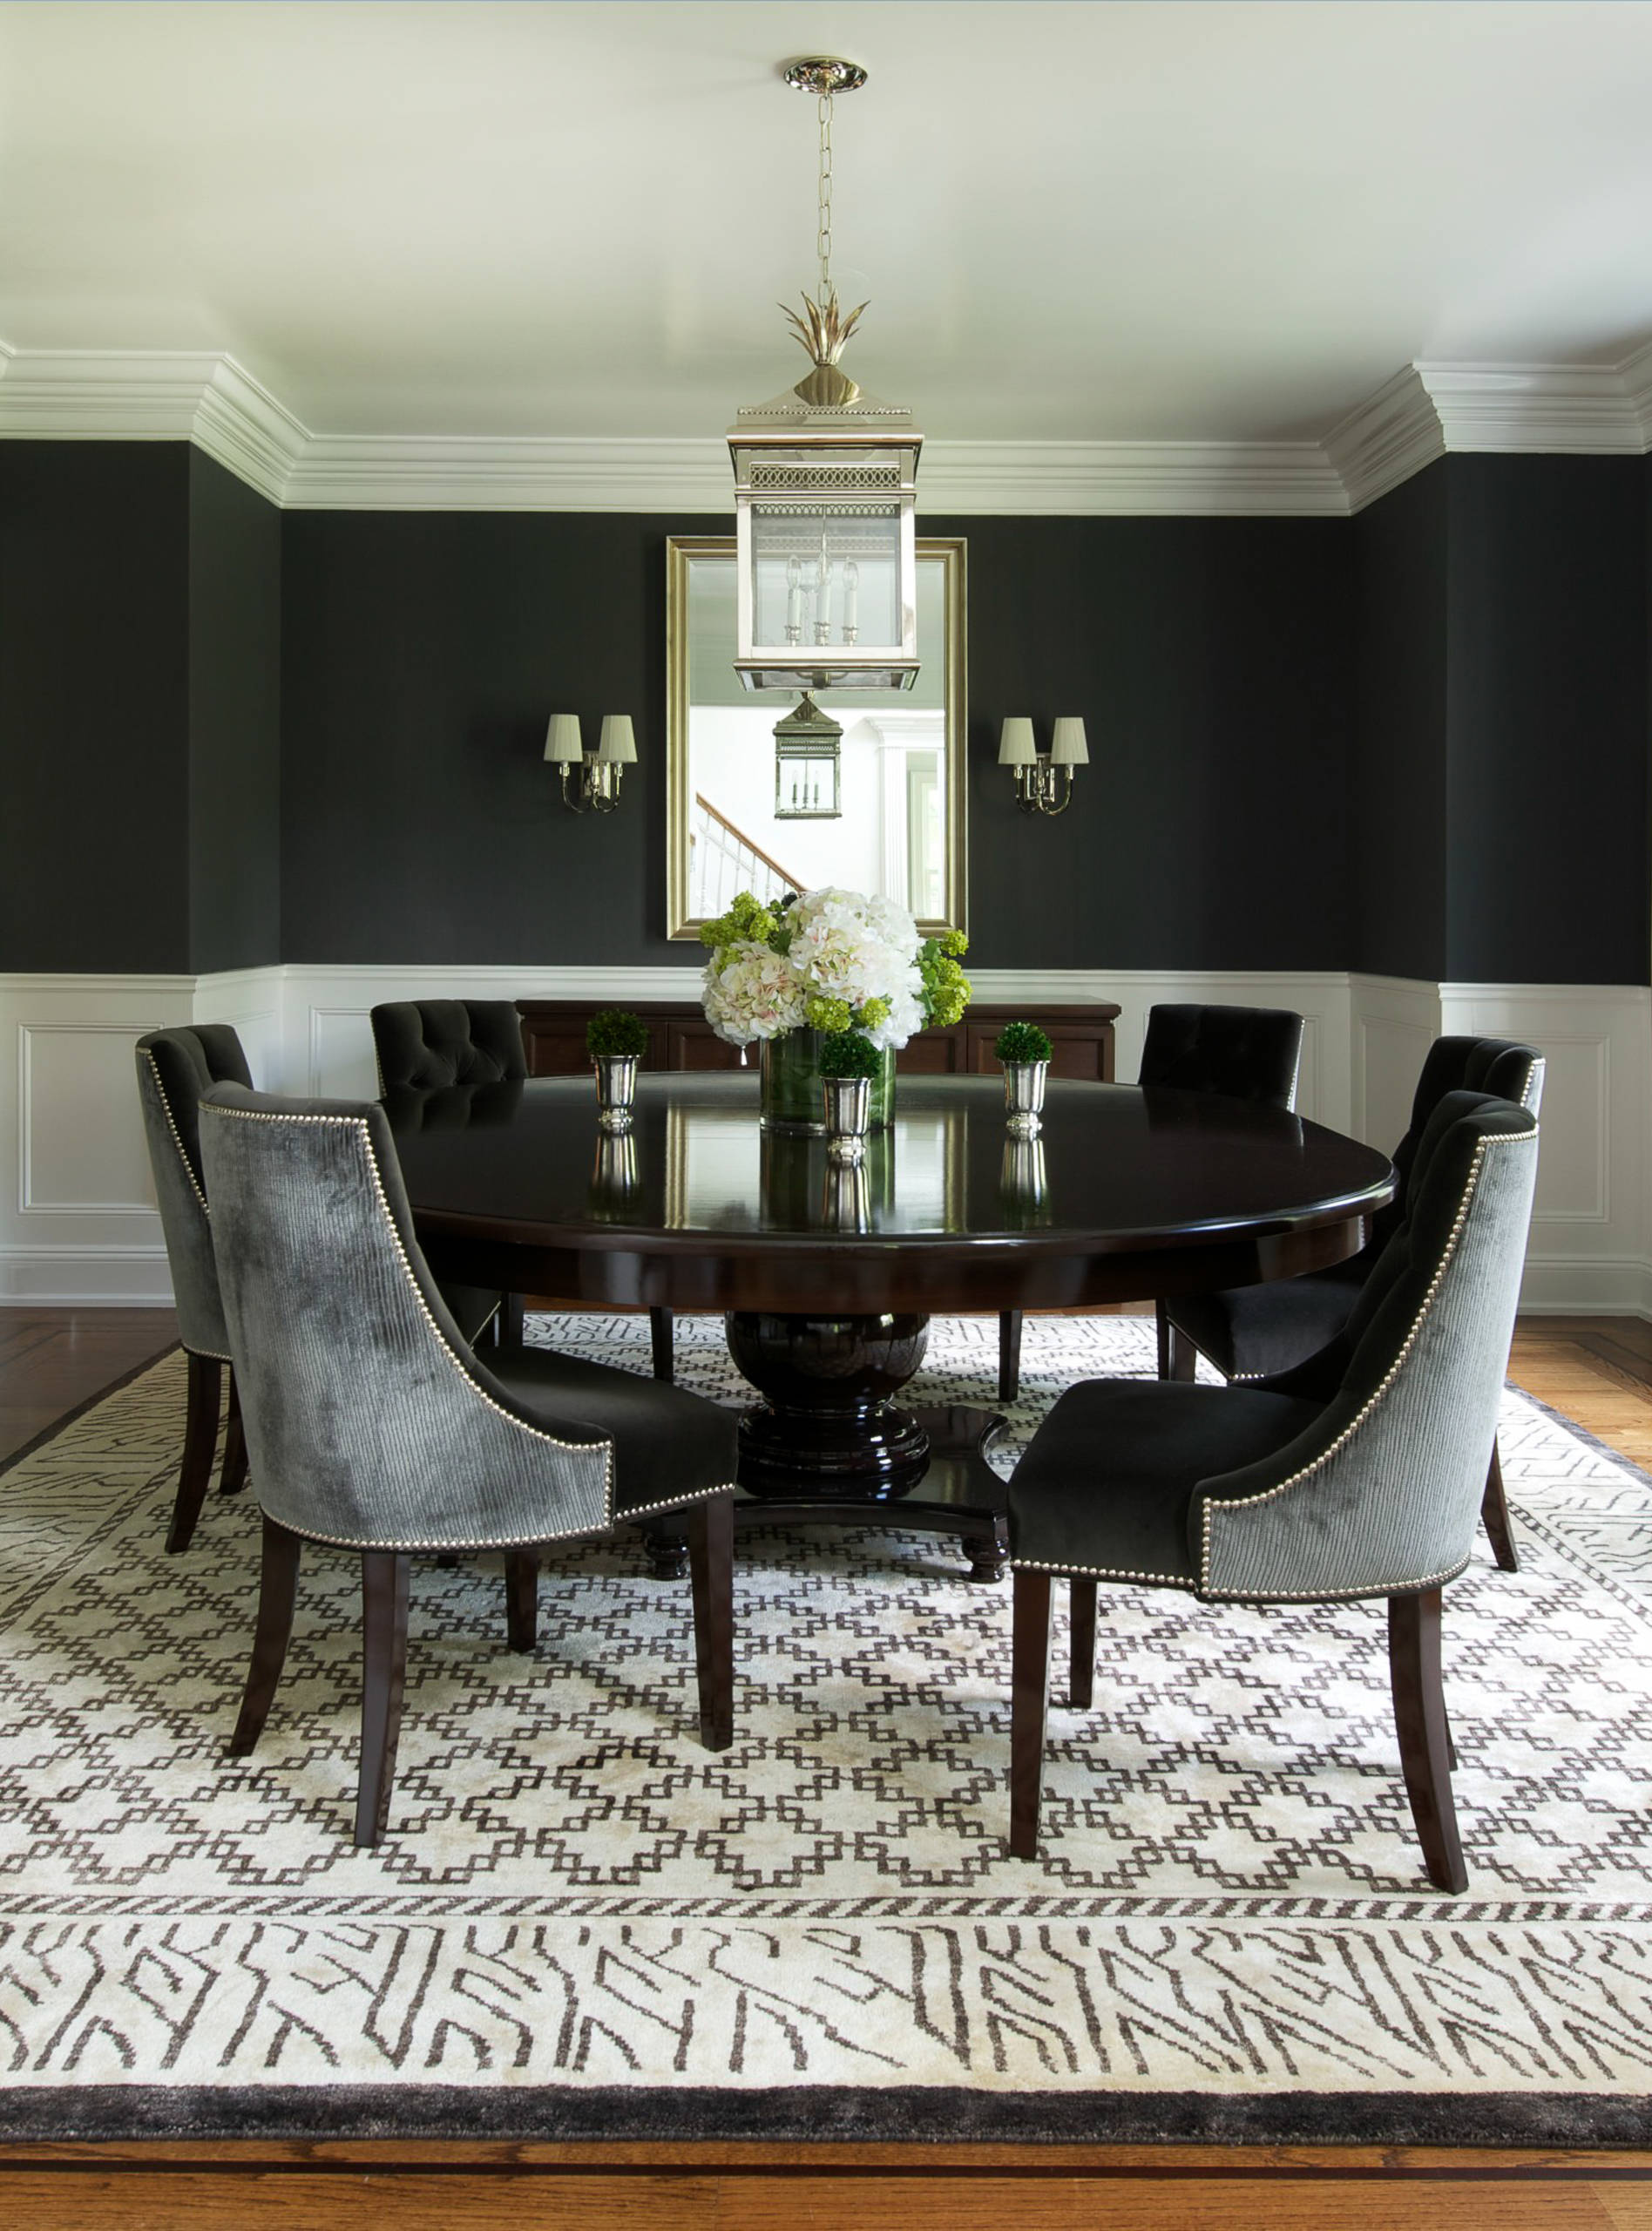 round dining table decorate home kitchen table round Dining room decoration round dining table Round Dining Table to Decorate Your Home Round Dining Table